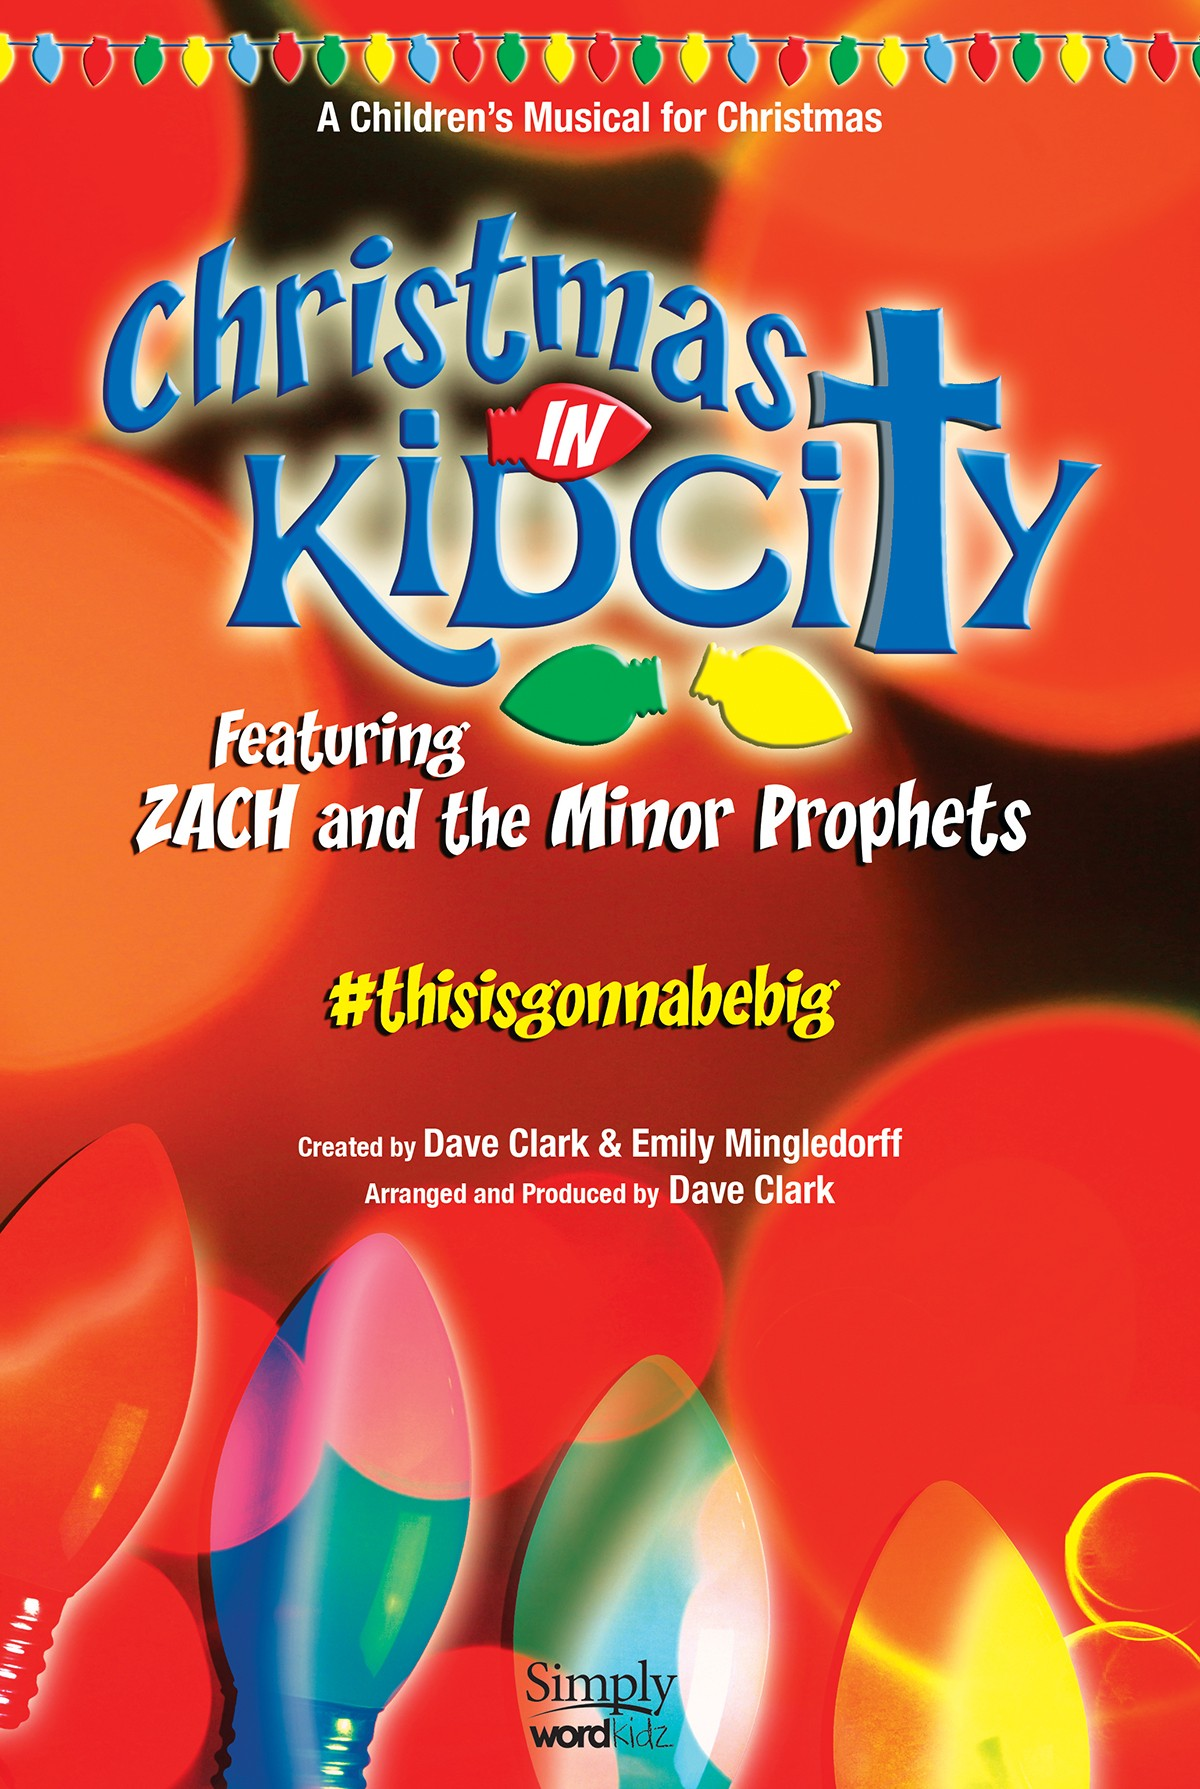 """Created by Dave Clark and Emily Mingledorff, the action all takes place within a church's kids ministry room, dubbed """"KidCity."""" With the timeline leading up to their annual Christmas celebration, this 26-minute musical for kids choir is nonstop fun, chock-full of cleverly written songs (the kids will walk away knowing the major and minor prophets!), all supported by an effortlessly effective, heartwarming script."""